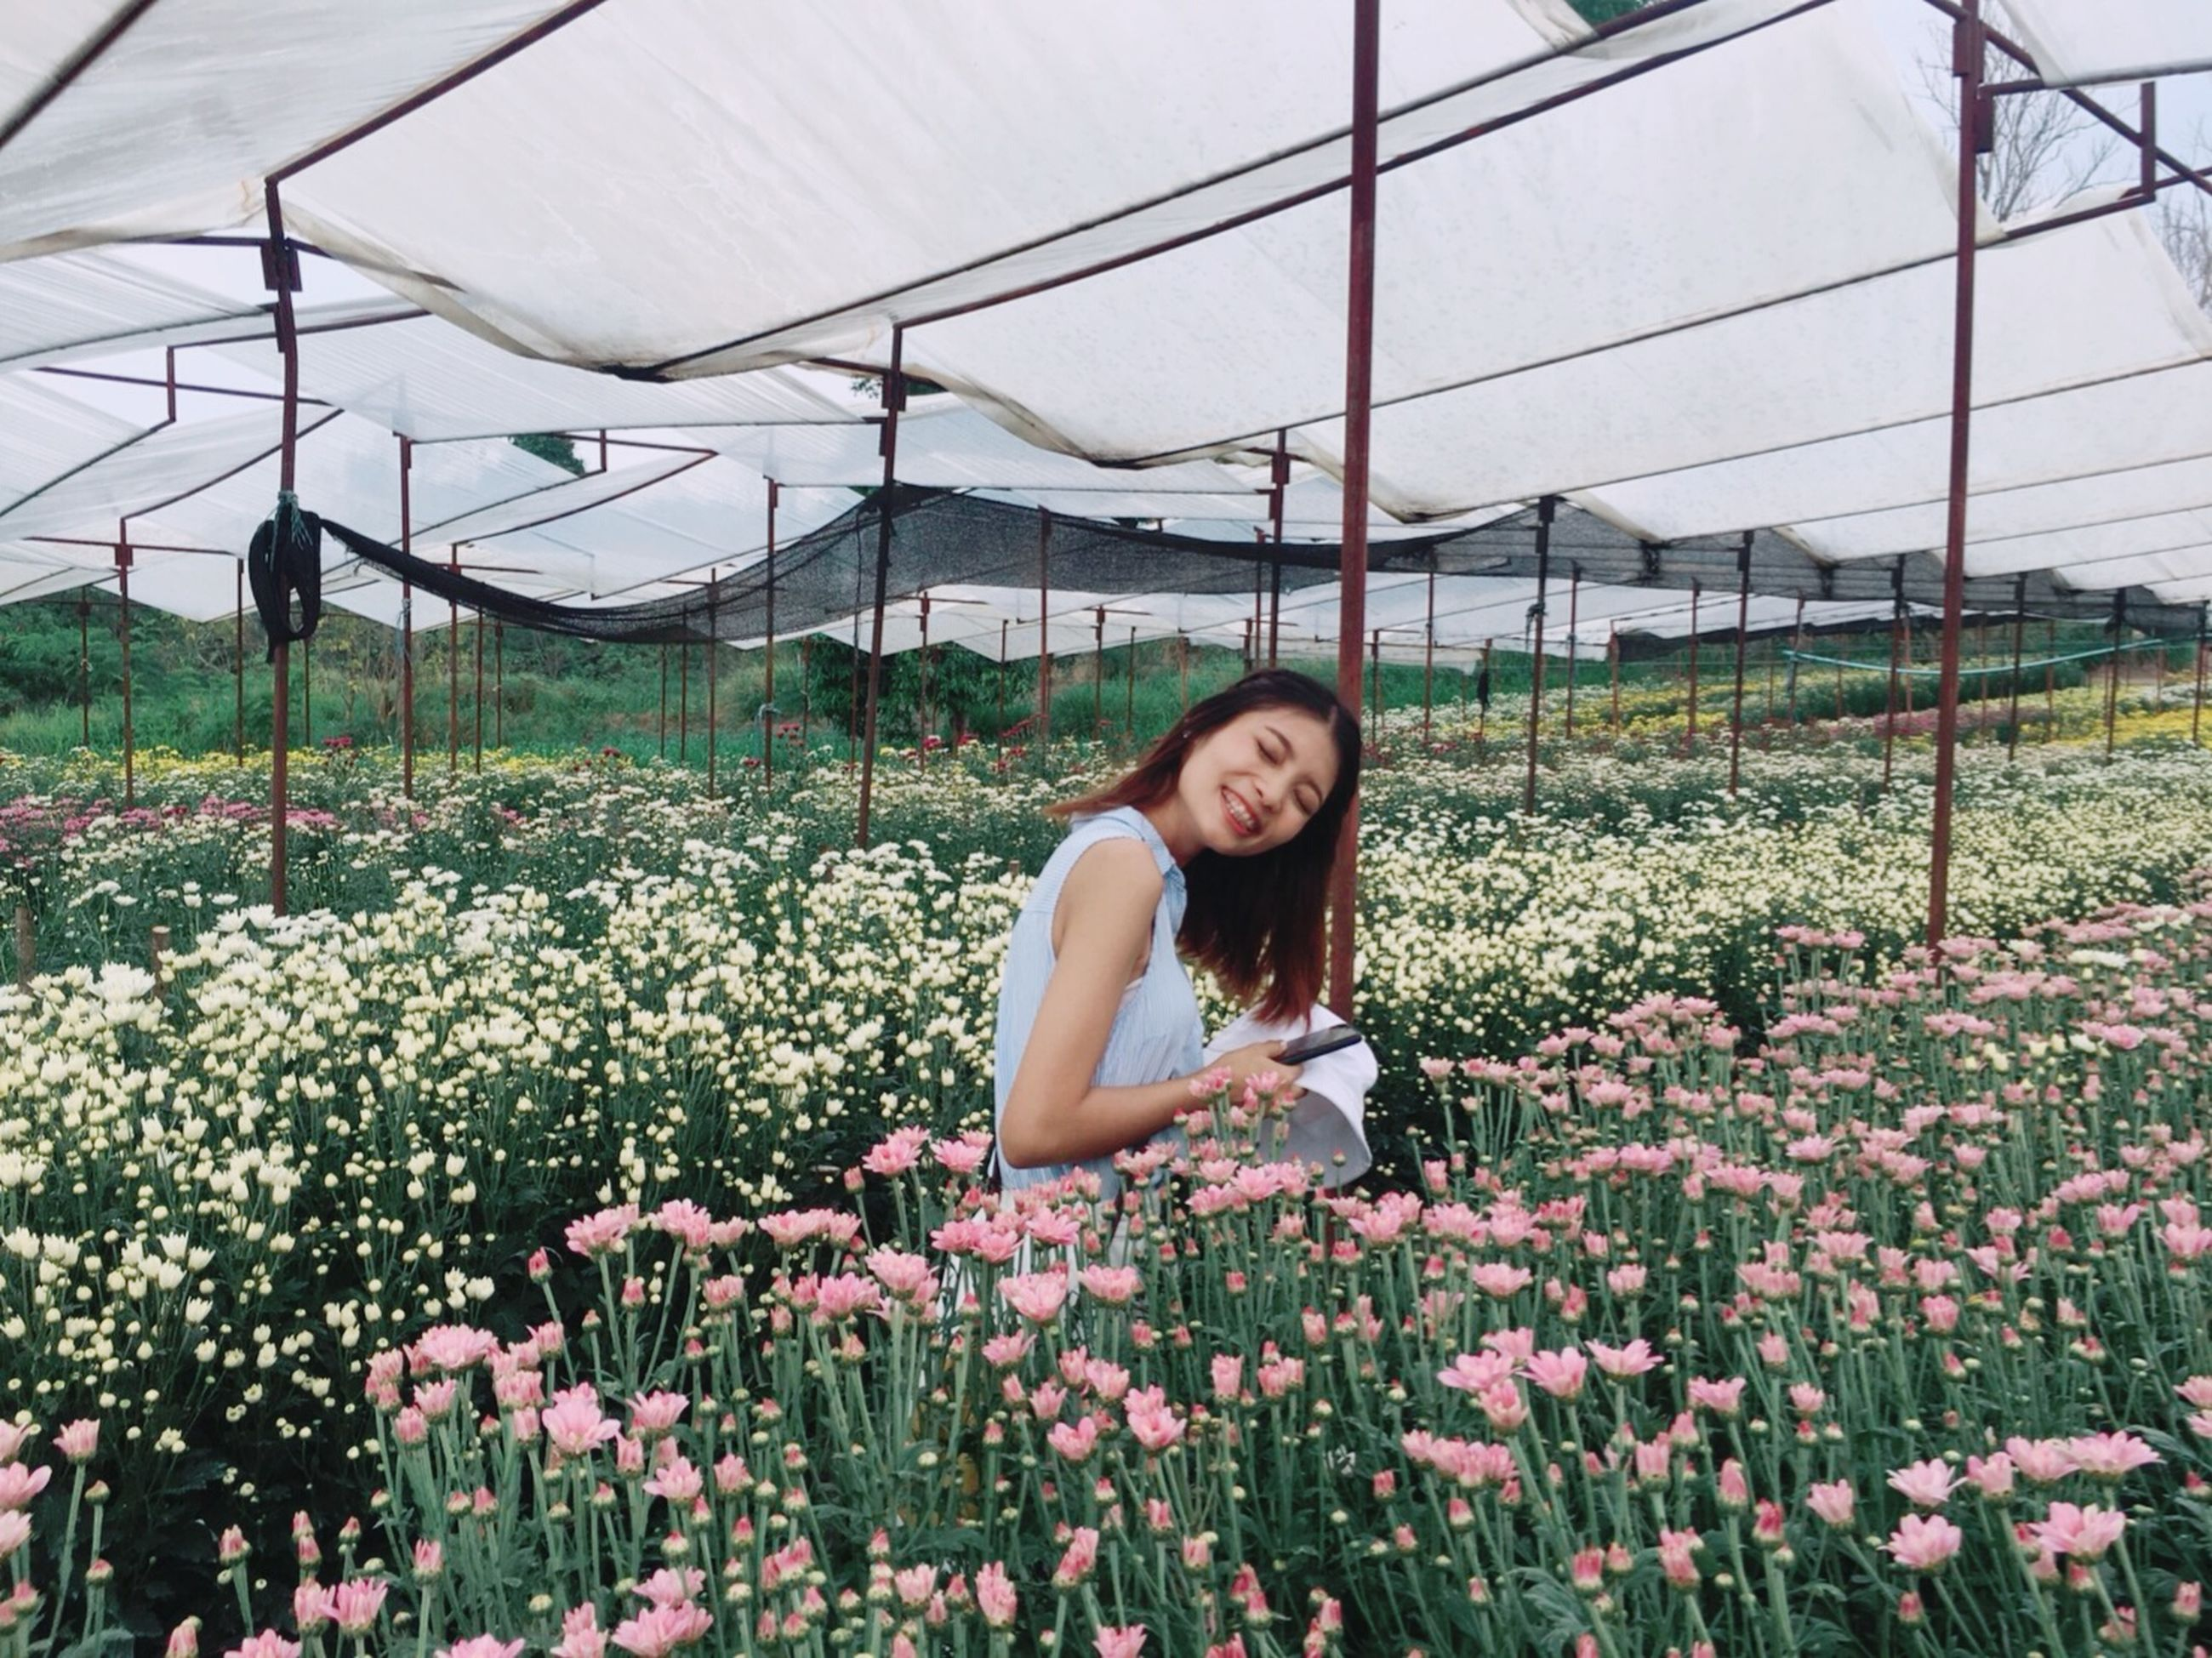 plant, one person, young adult, flower, growth, real people, flowering plant, greenhouse, young women, nature, beauty in nature, portrait, looking at camera, women, lifestyles, smiling, day, casual clothing, freshness, beautiful woman, outdoors, hairstyle, gardening